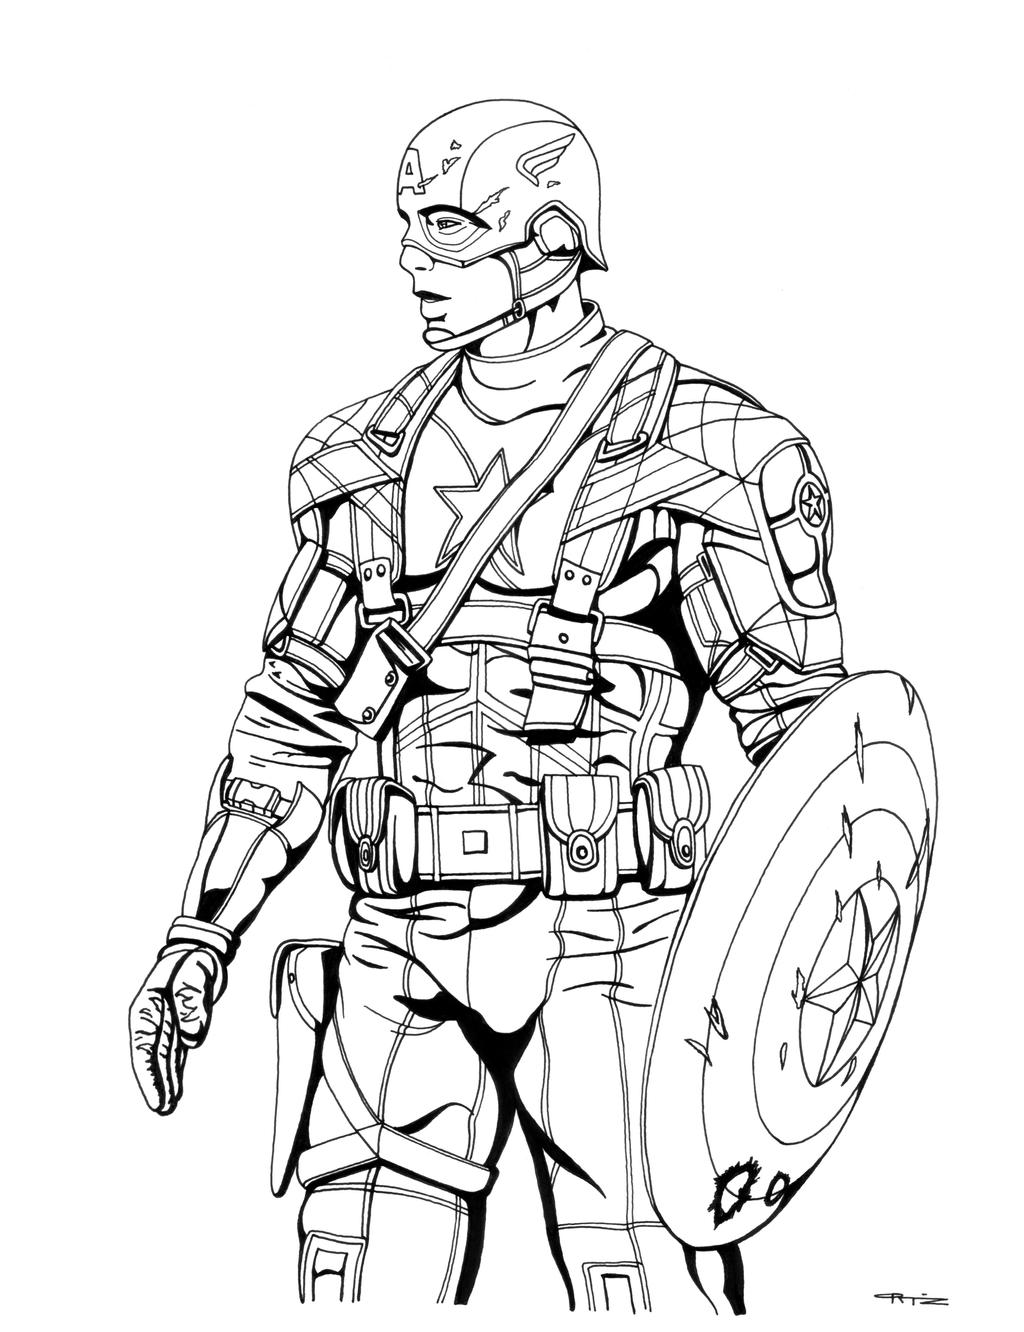 Avengers Coloring Pages Captain America : Heroic captain america first avenger quotes quotesgram